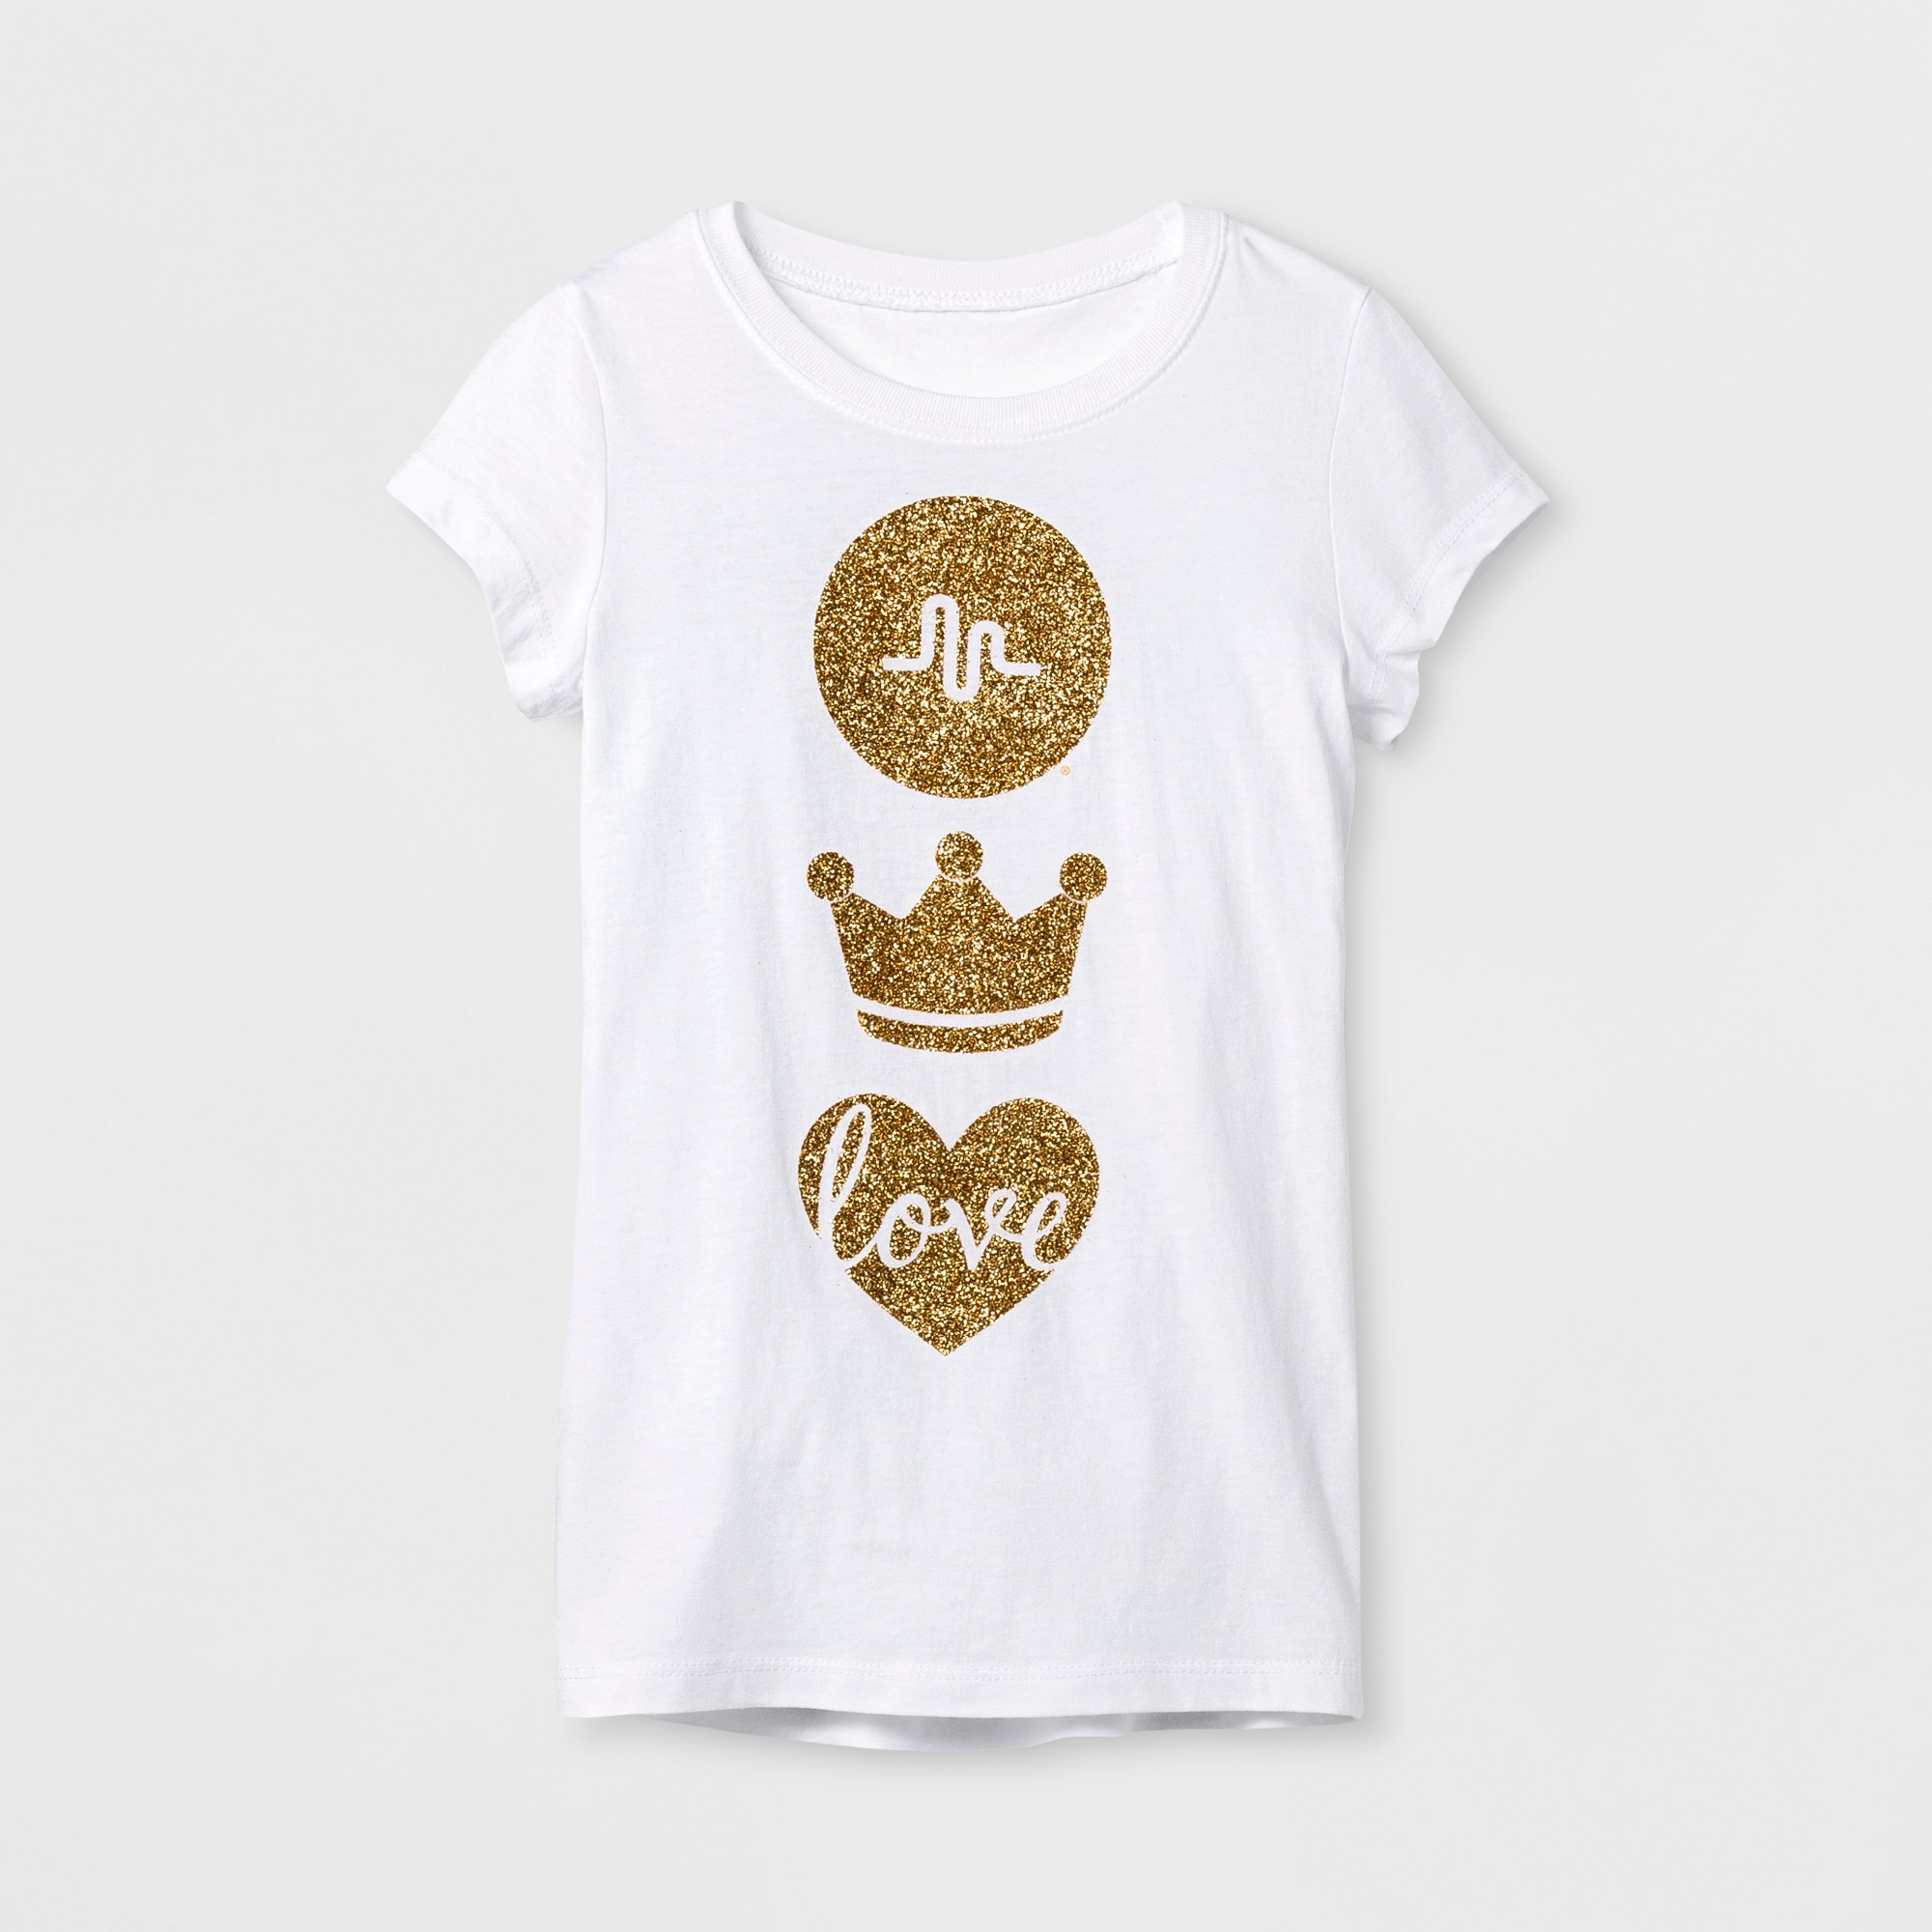 b7560f4b0815 Girls' musical.ly Crown Love Graphic Short Sleeve T-Shirt - White L